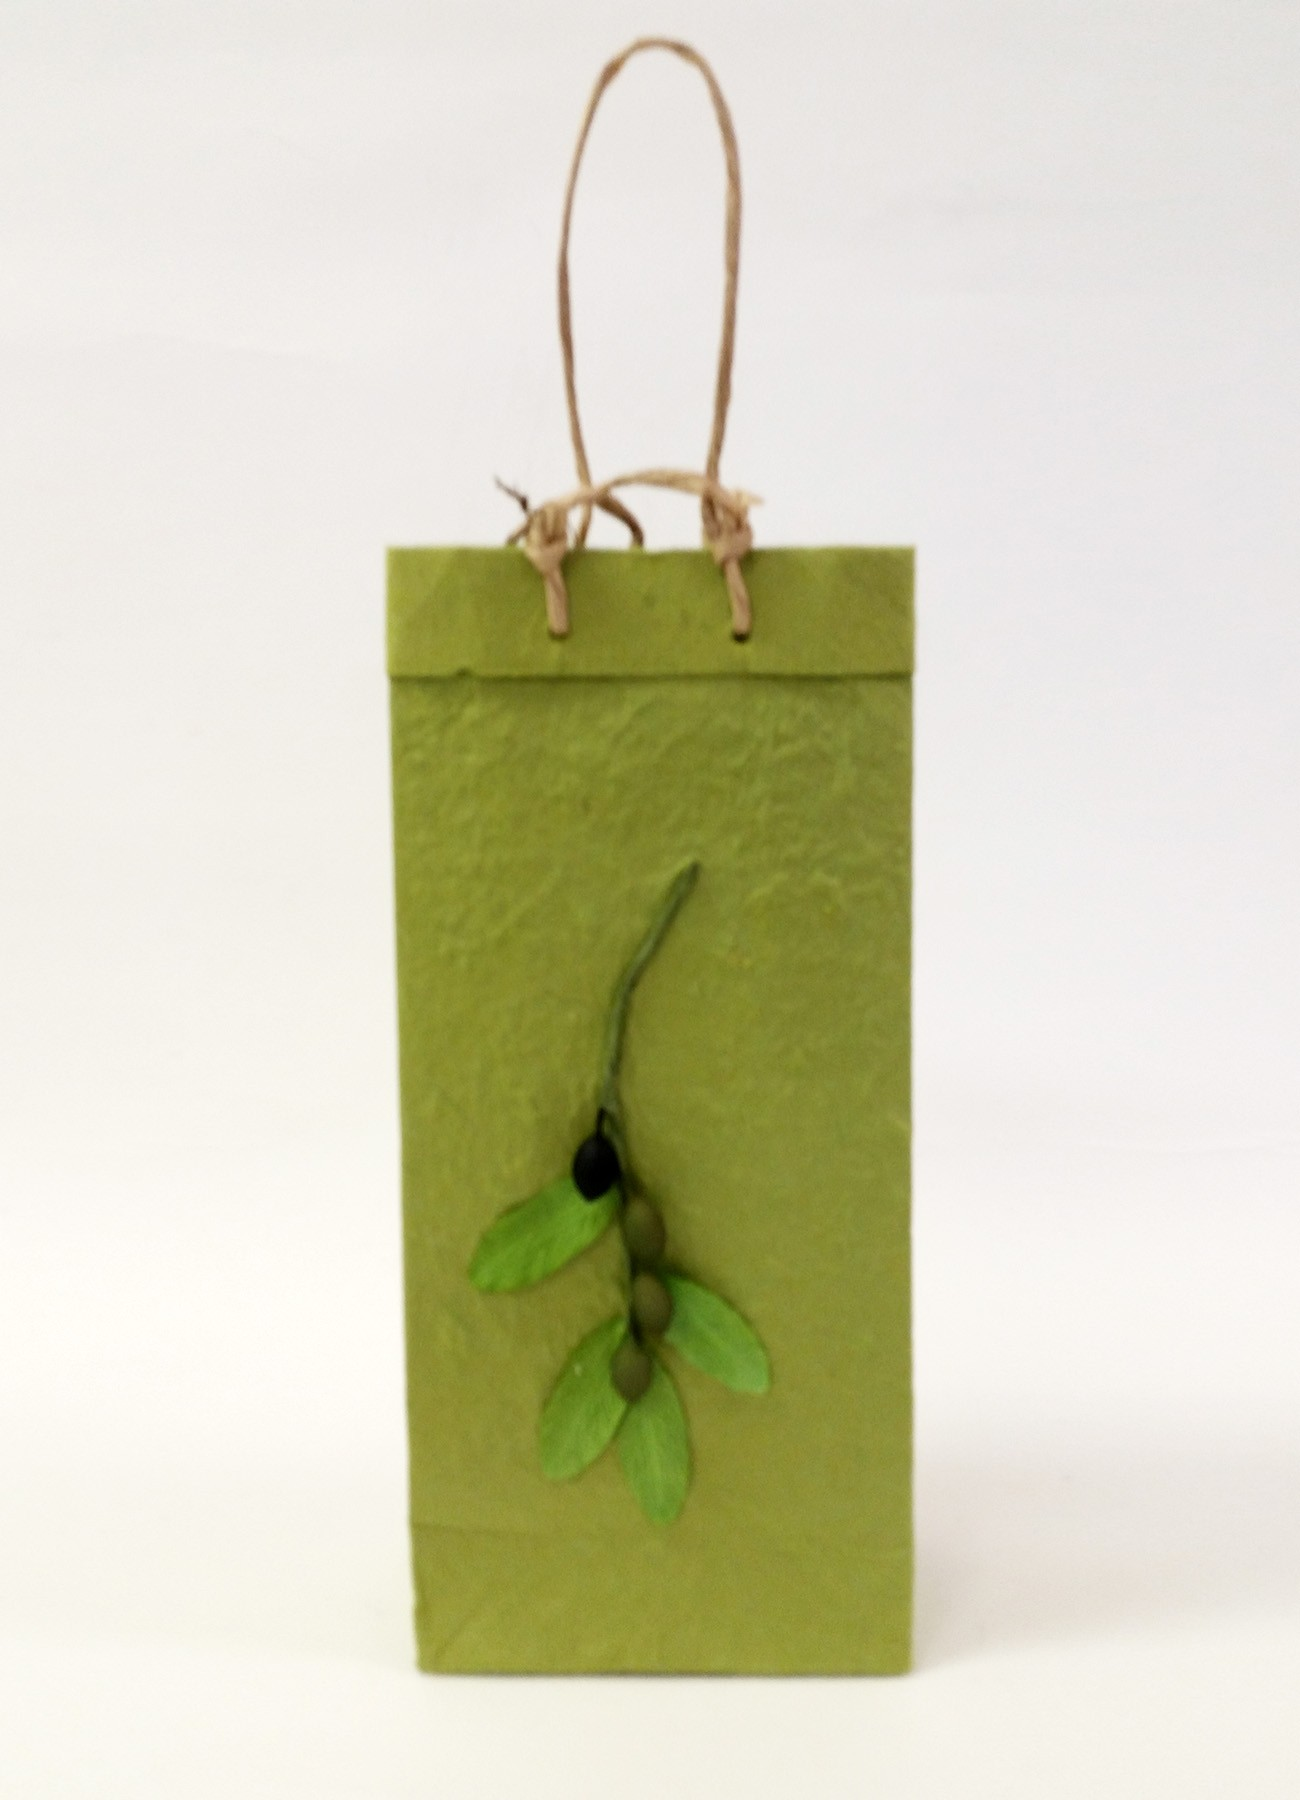 Two-Bottle Olive Branch Gift Bag in Green